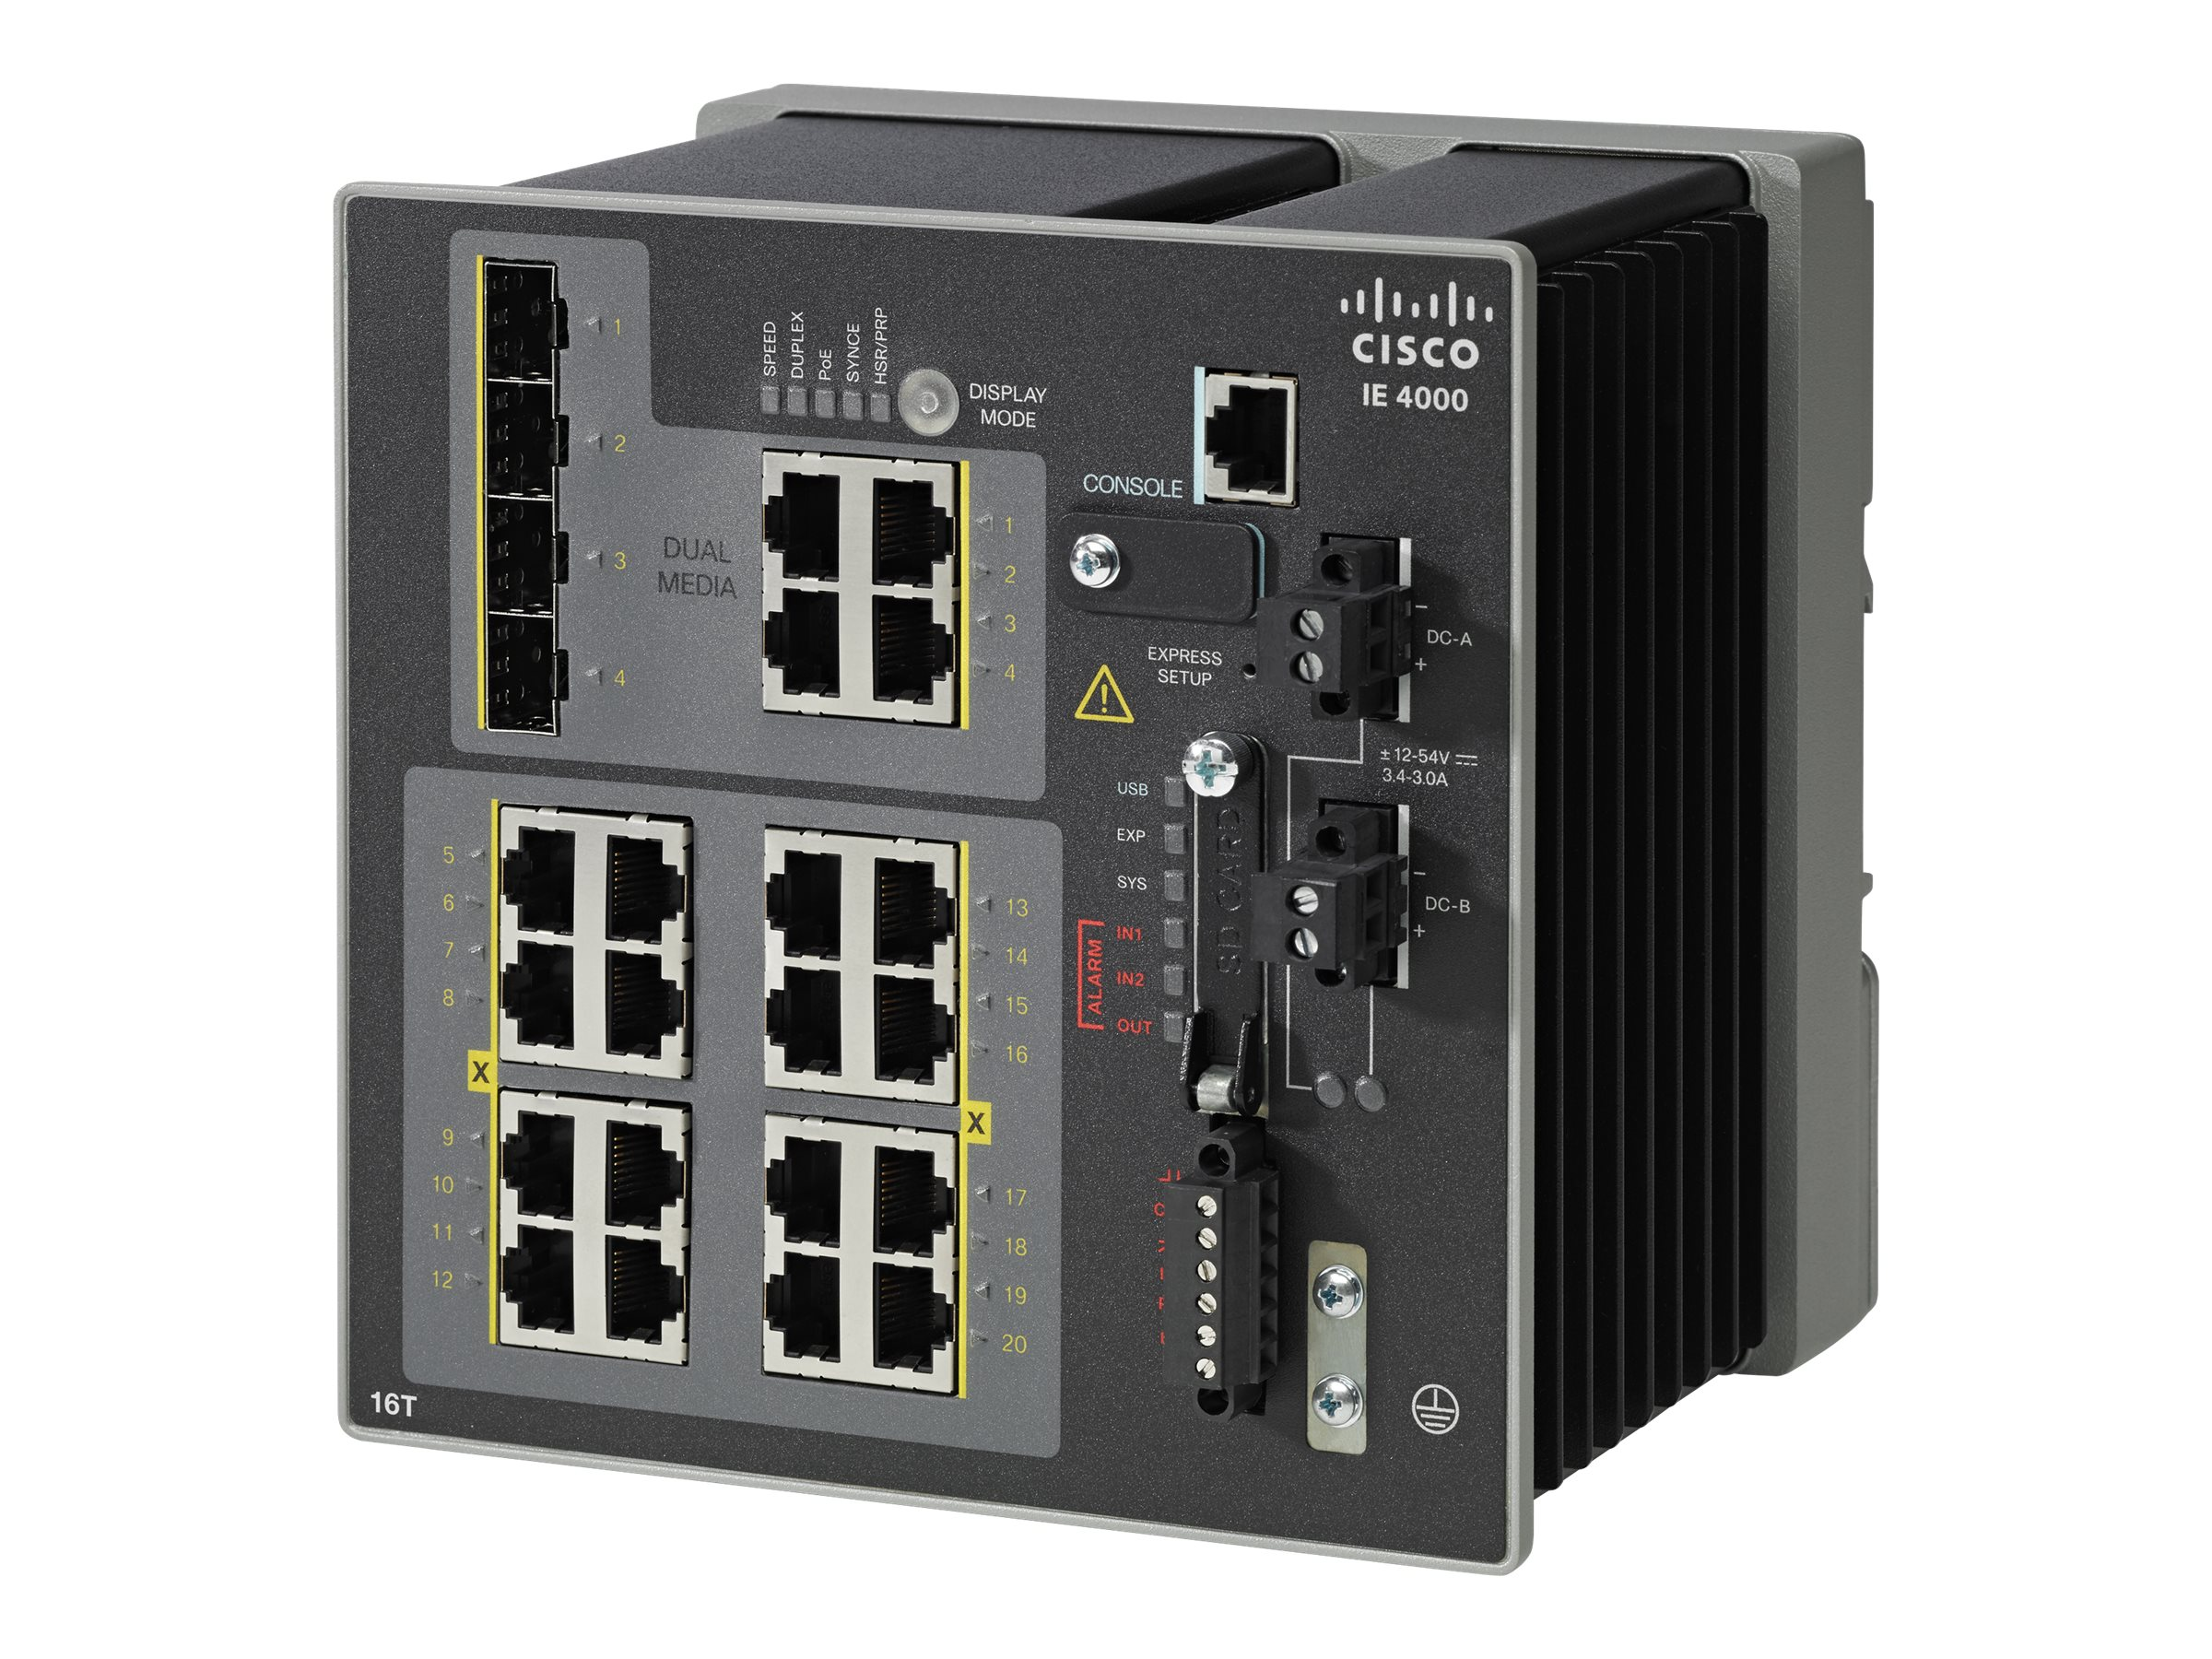 Cisco IE 4000 16 X RJ45 10 100M 4 X 1G Combo LAN Base, IE-4000-16T4G-E, 19019131, Network Switches